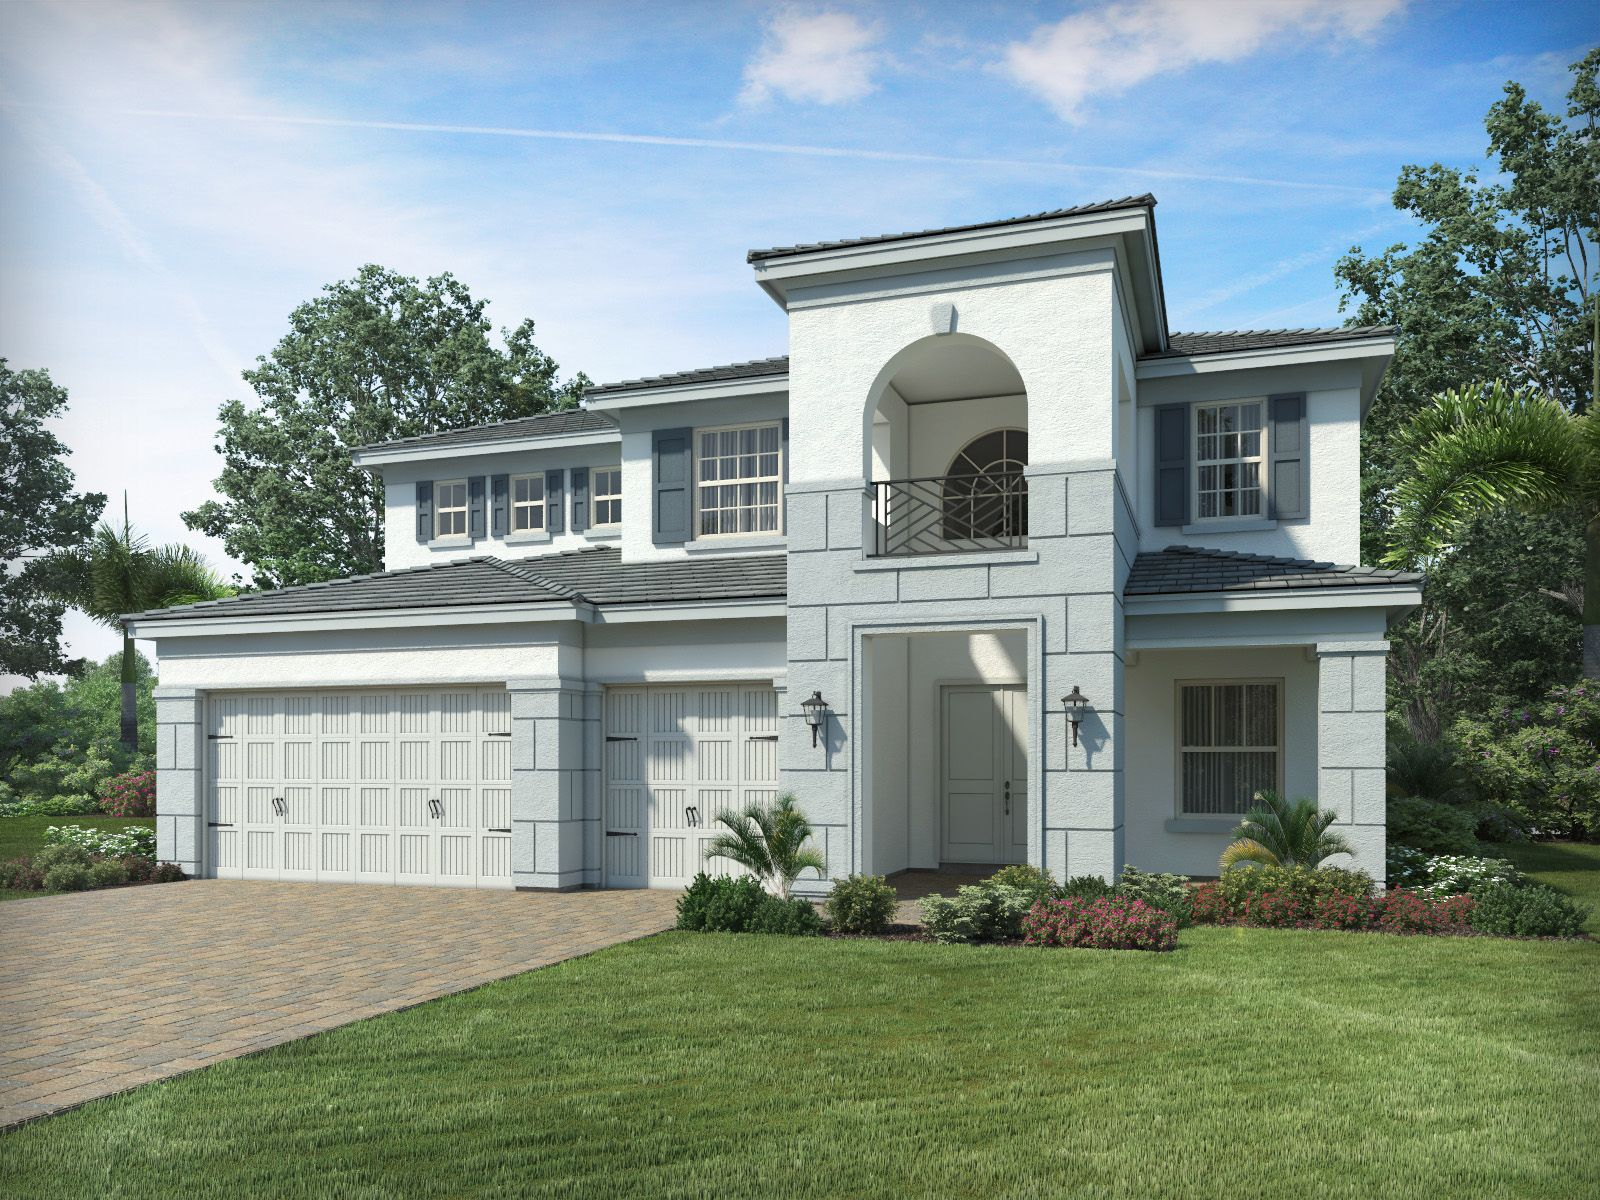 New construction homes and floor plans in palm beach - New construction palm beach gardens ...